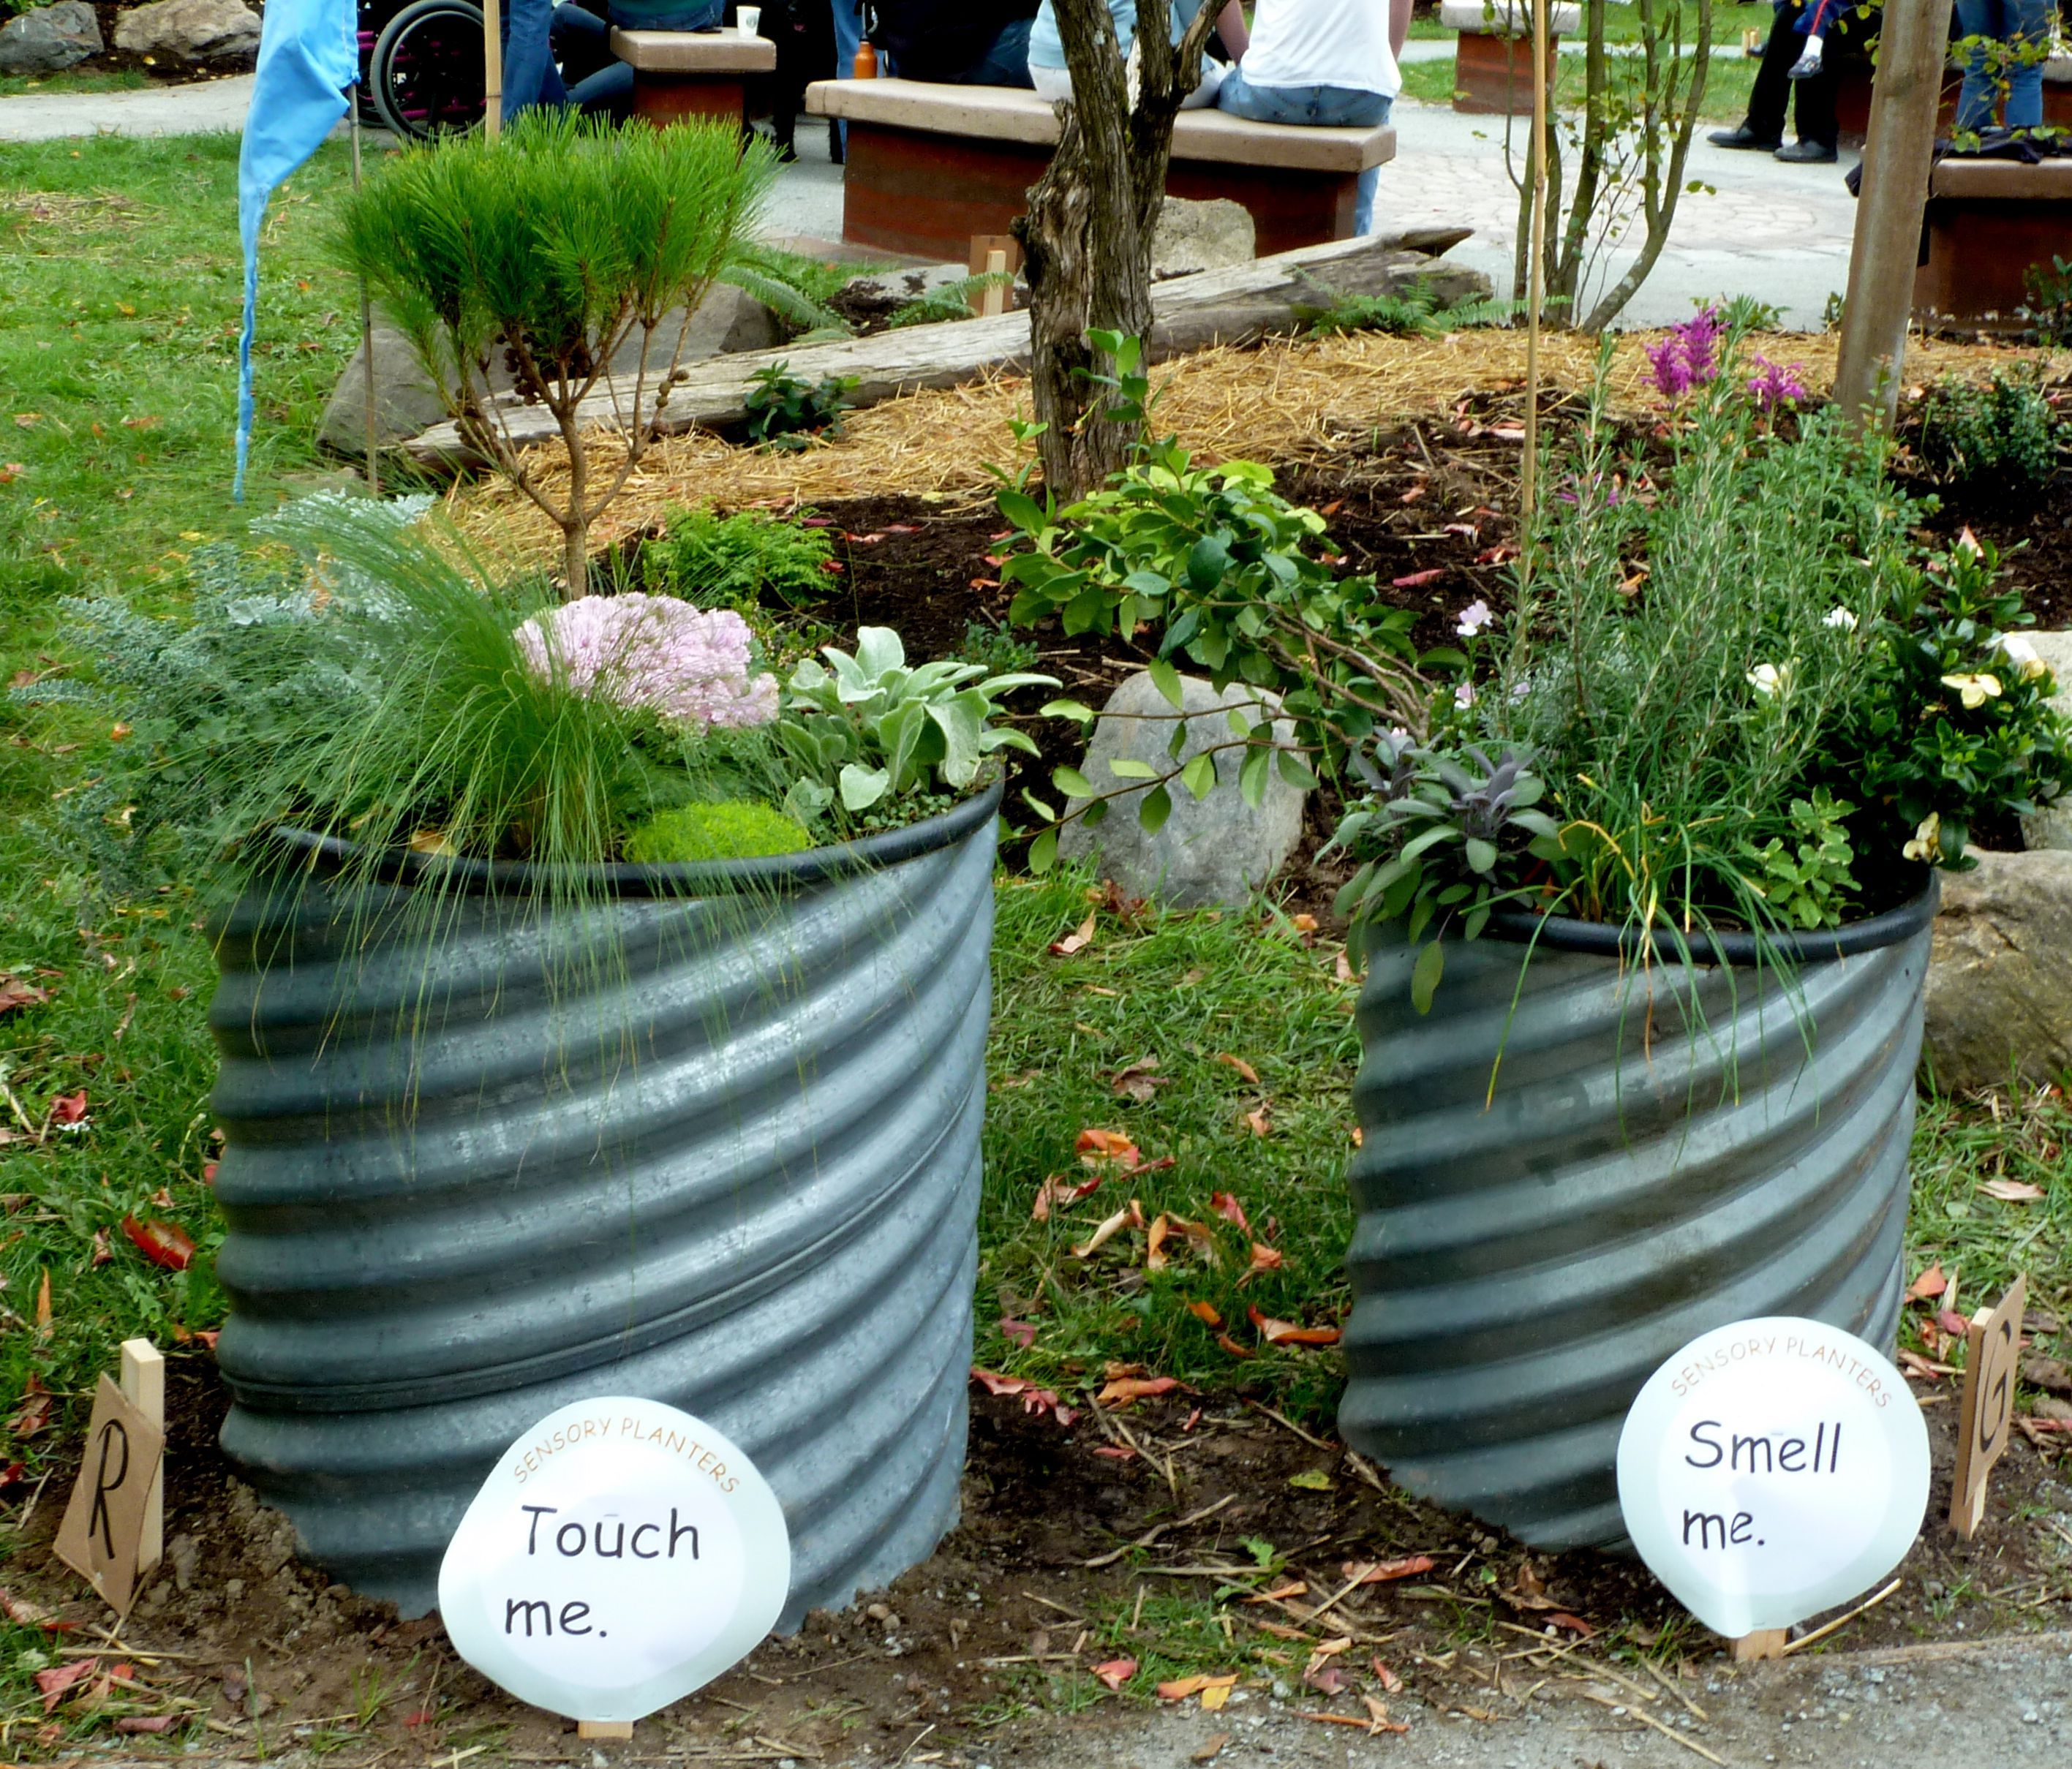 I love the idea of having different garden bedsbarrels for the